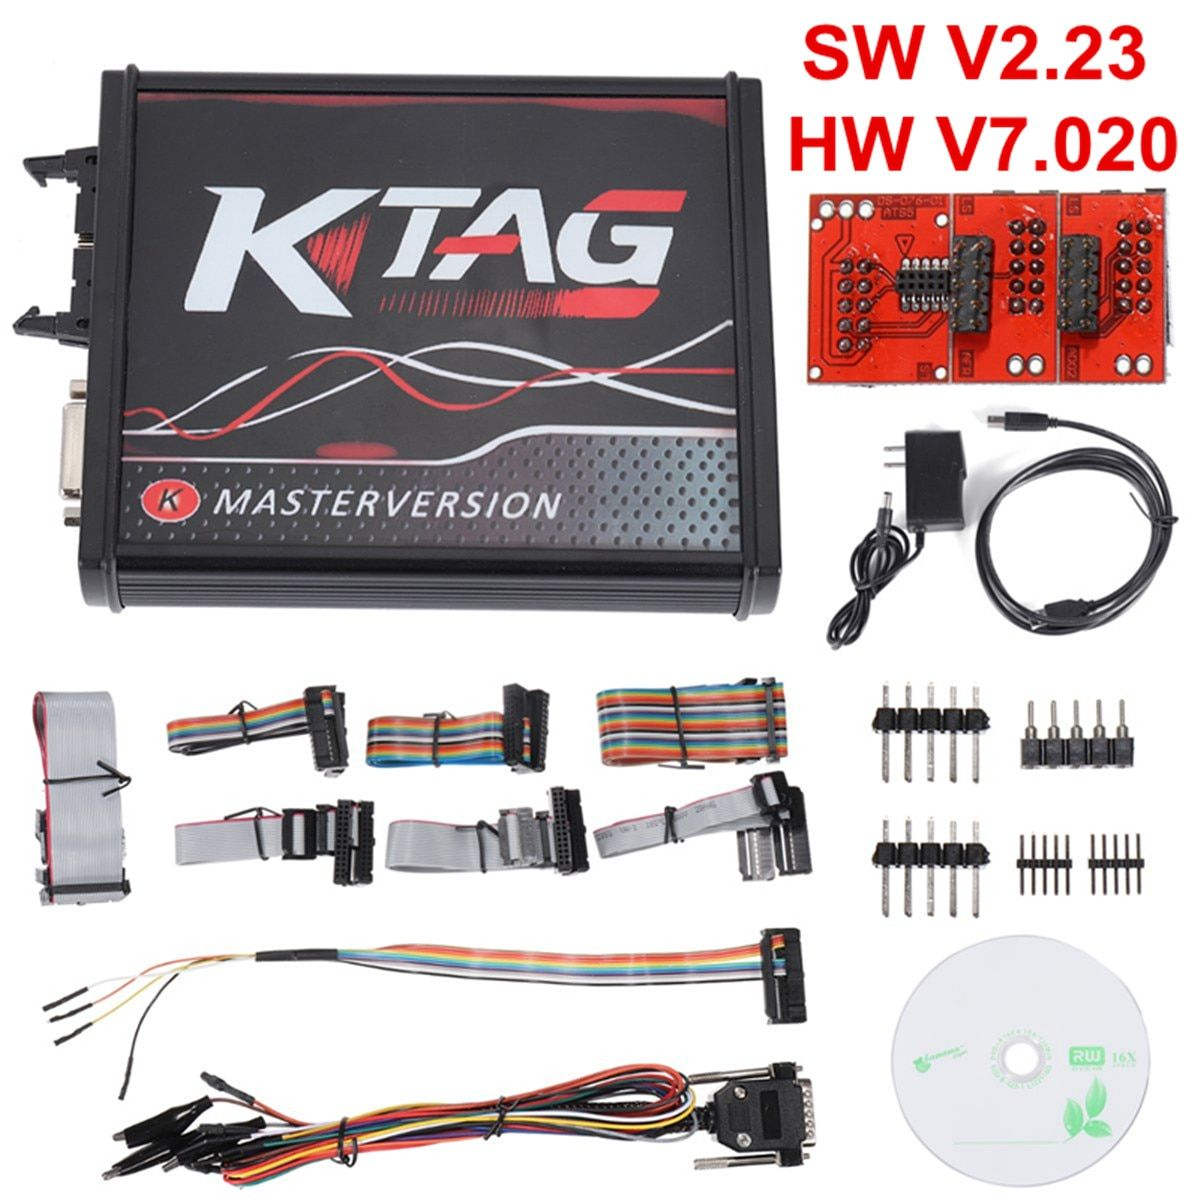 For V2.23 KTAG ECU Programmer Cable Tool V7.020 PCB Online Version Unlimited Token Auto Car Vehicles Repair Tools Diagnosis Kit